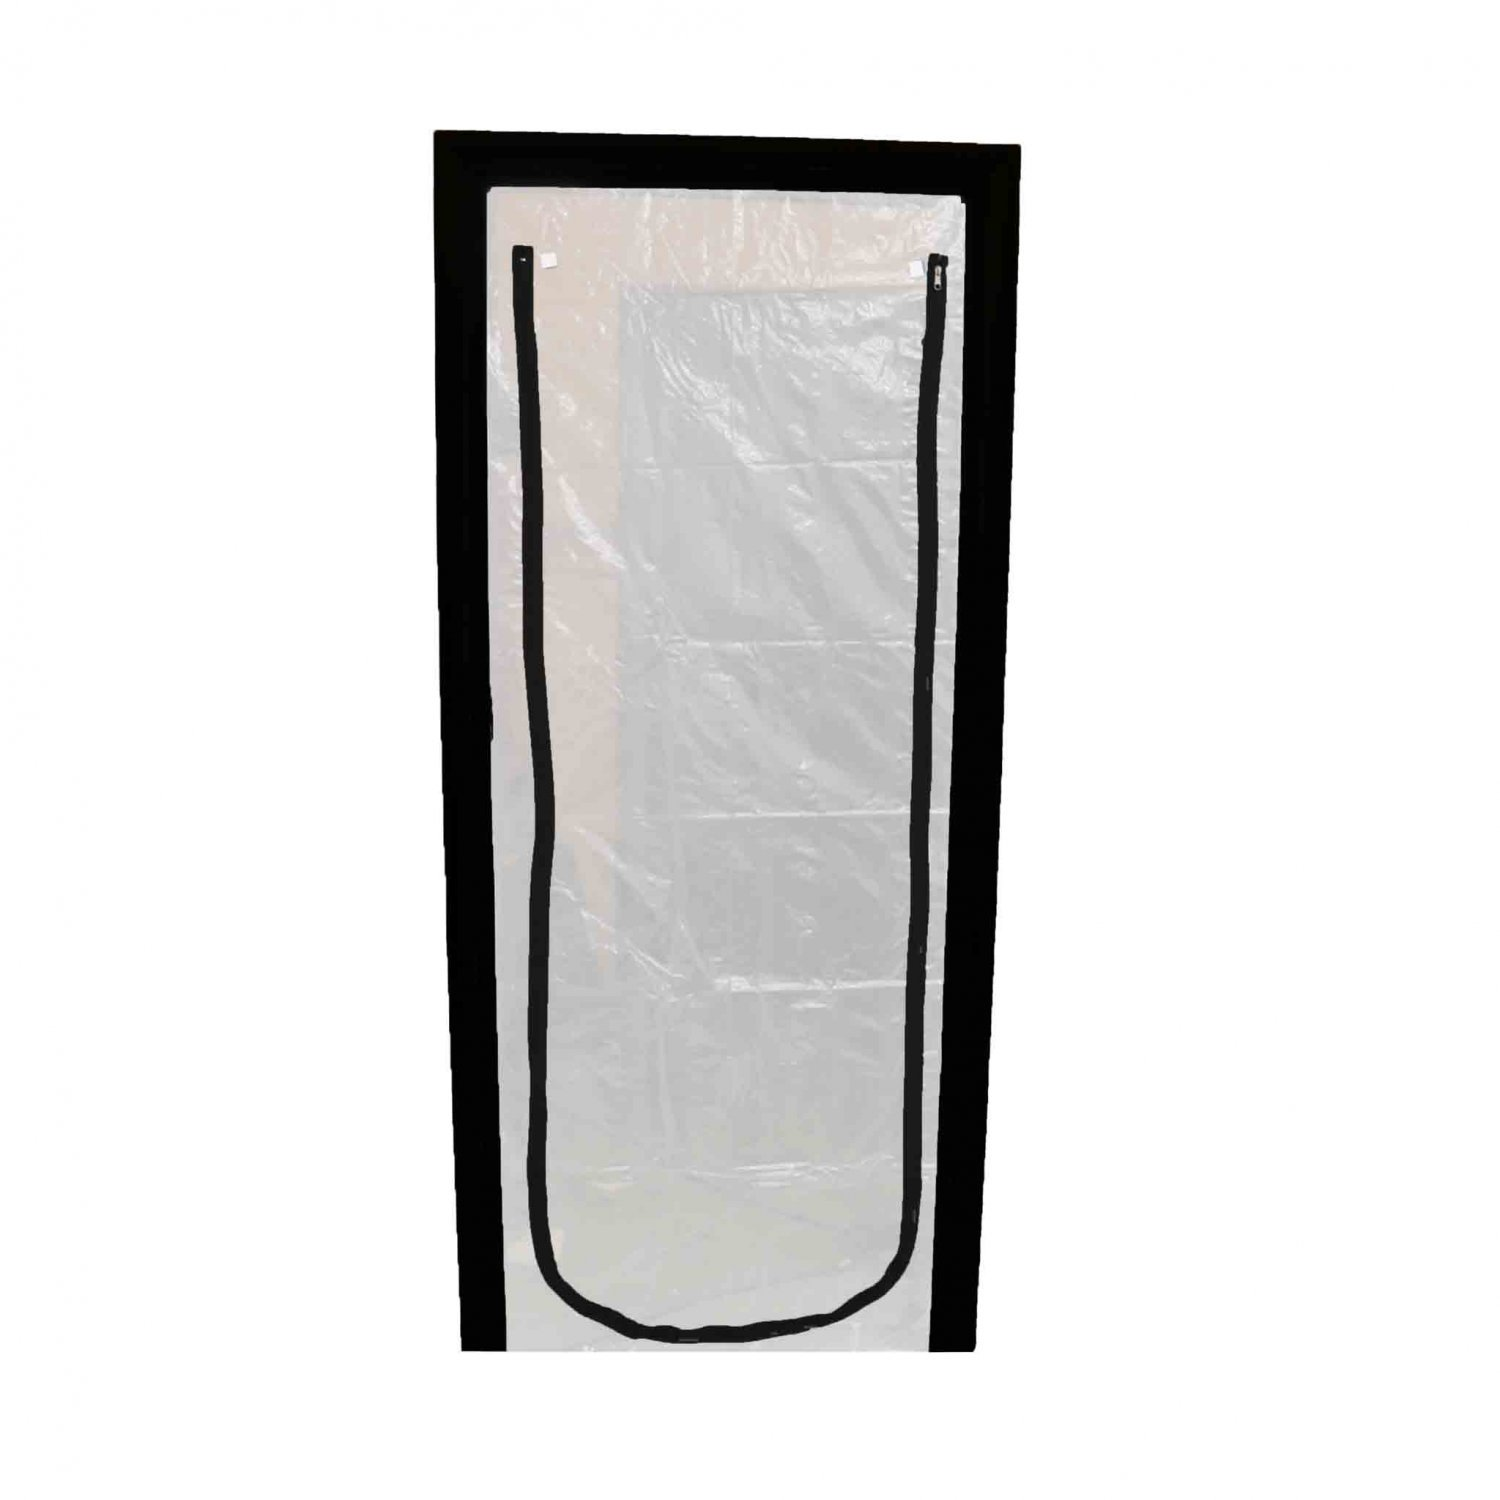 Heavy Duty Reusable Zip Door Dust Barrier Guard Protection Kit